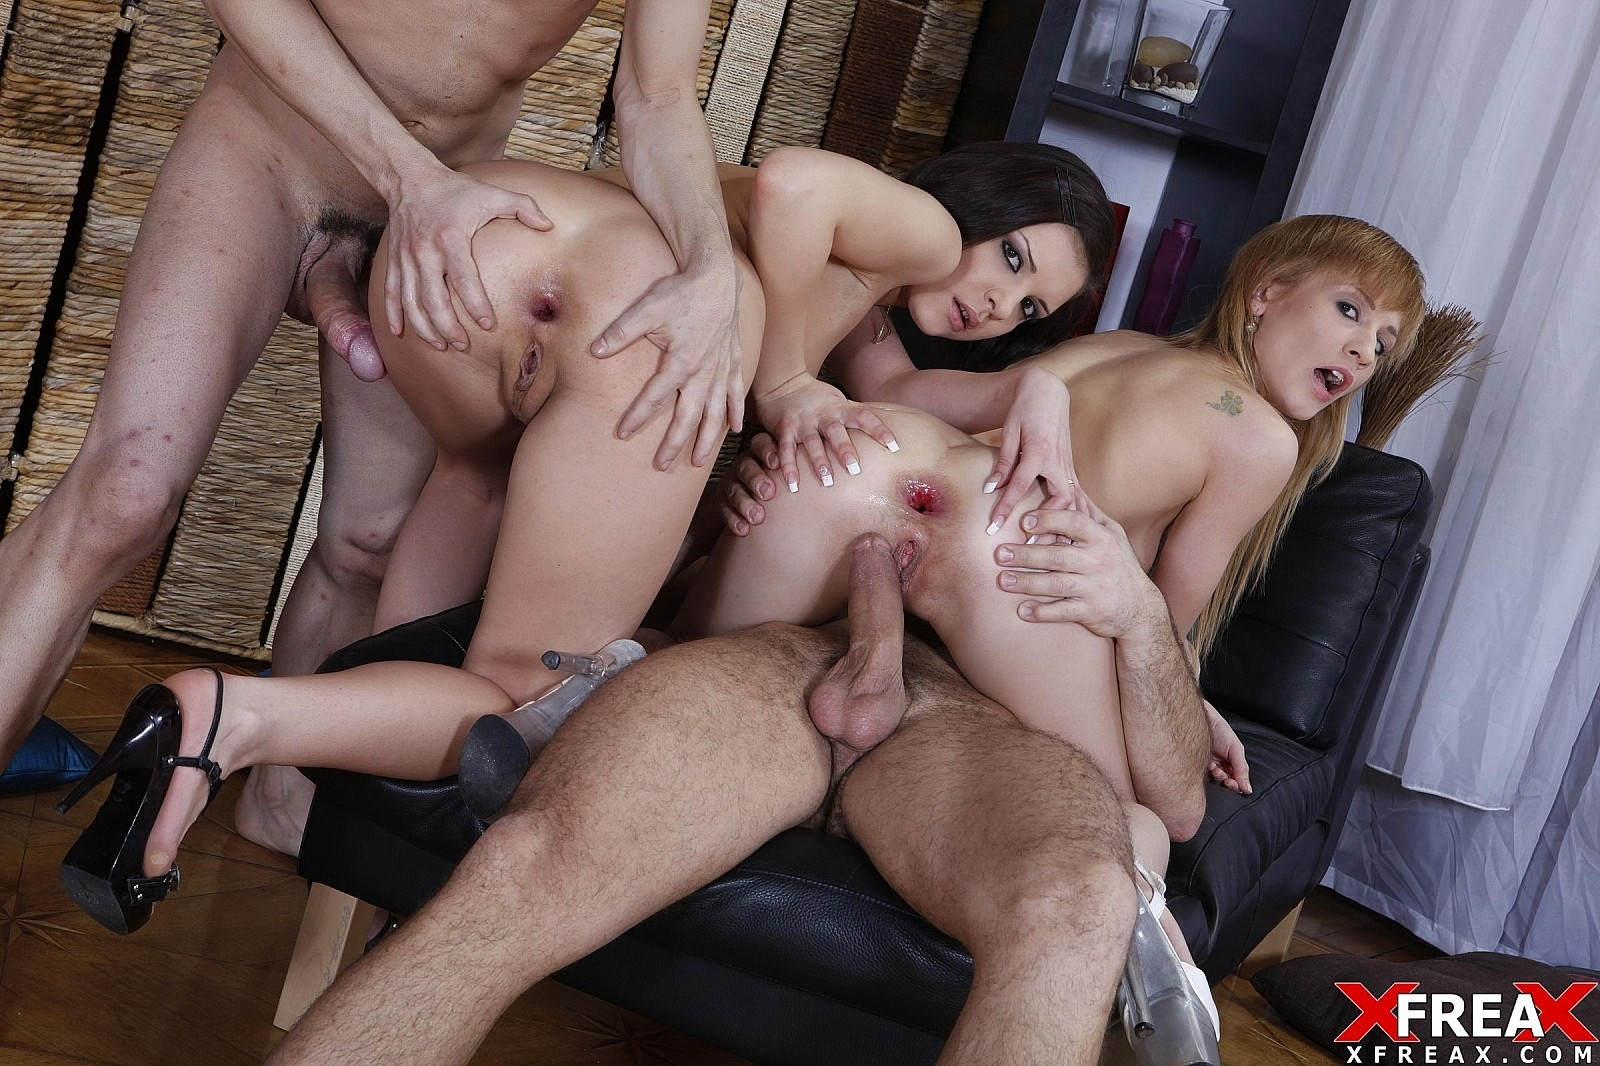 [DoubleAnalAction] DOUBLE ANAL PARTY #2